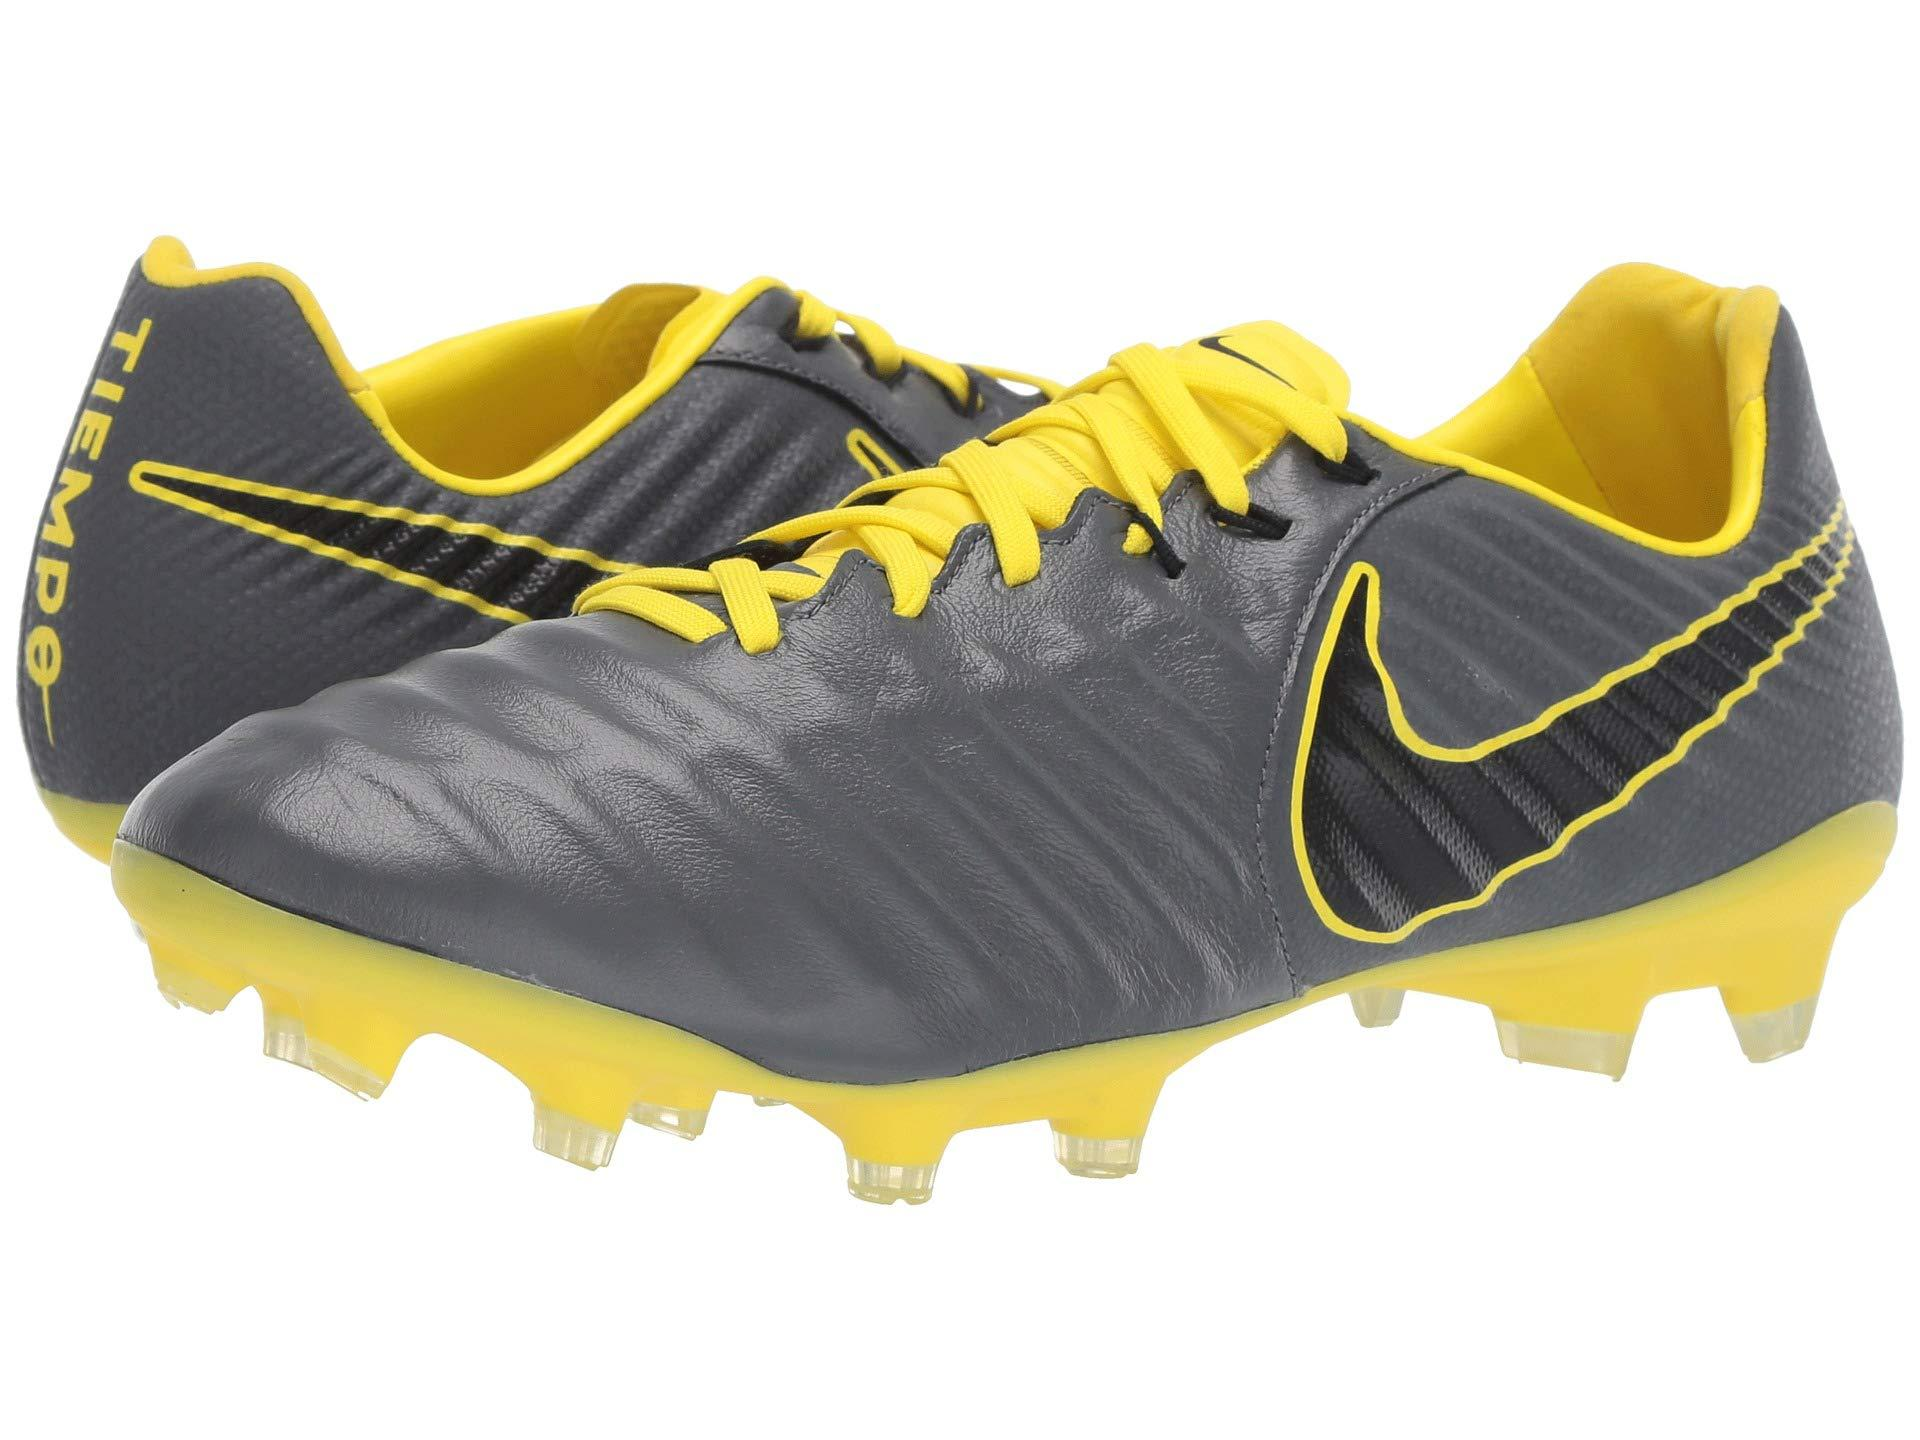 d41d02281 Nike. Legend 7 Pro Fg (dark Grey black opti Yellow) Men s Soccer Shoes